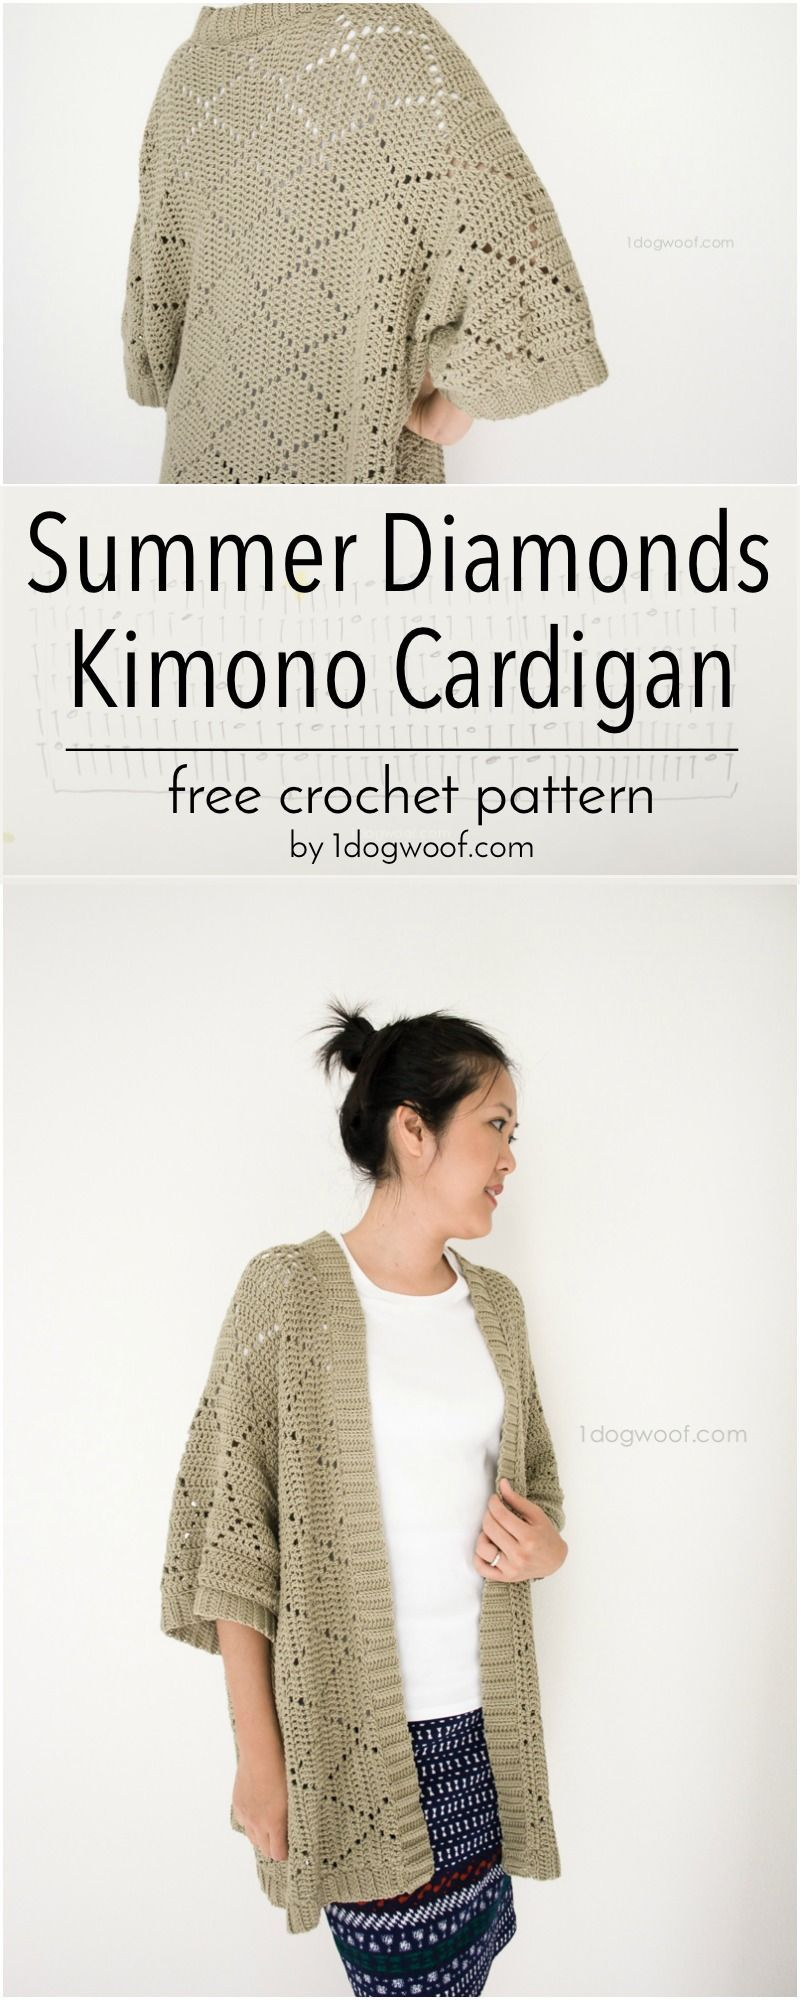 Summer Diamonds Kimono Cardigan | Crochet/Sweaters | Pinterest ...